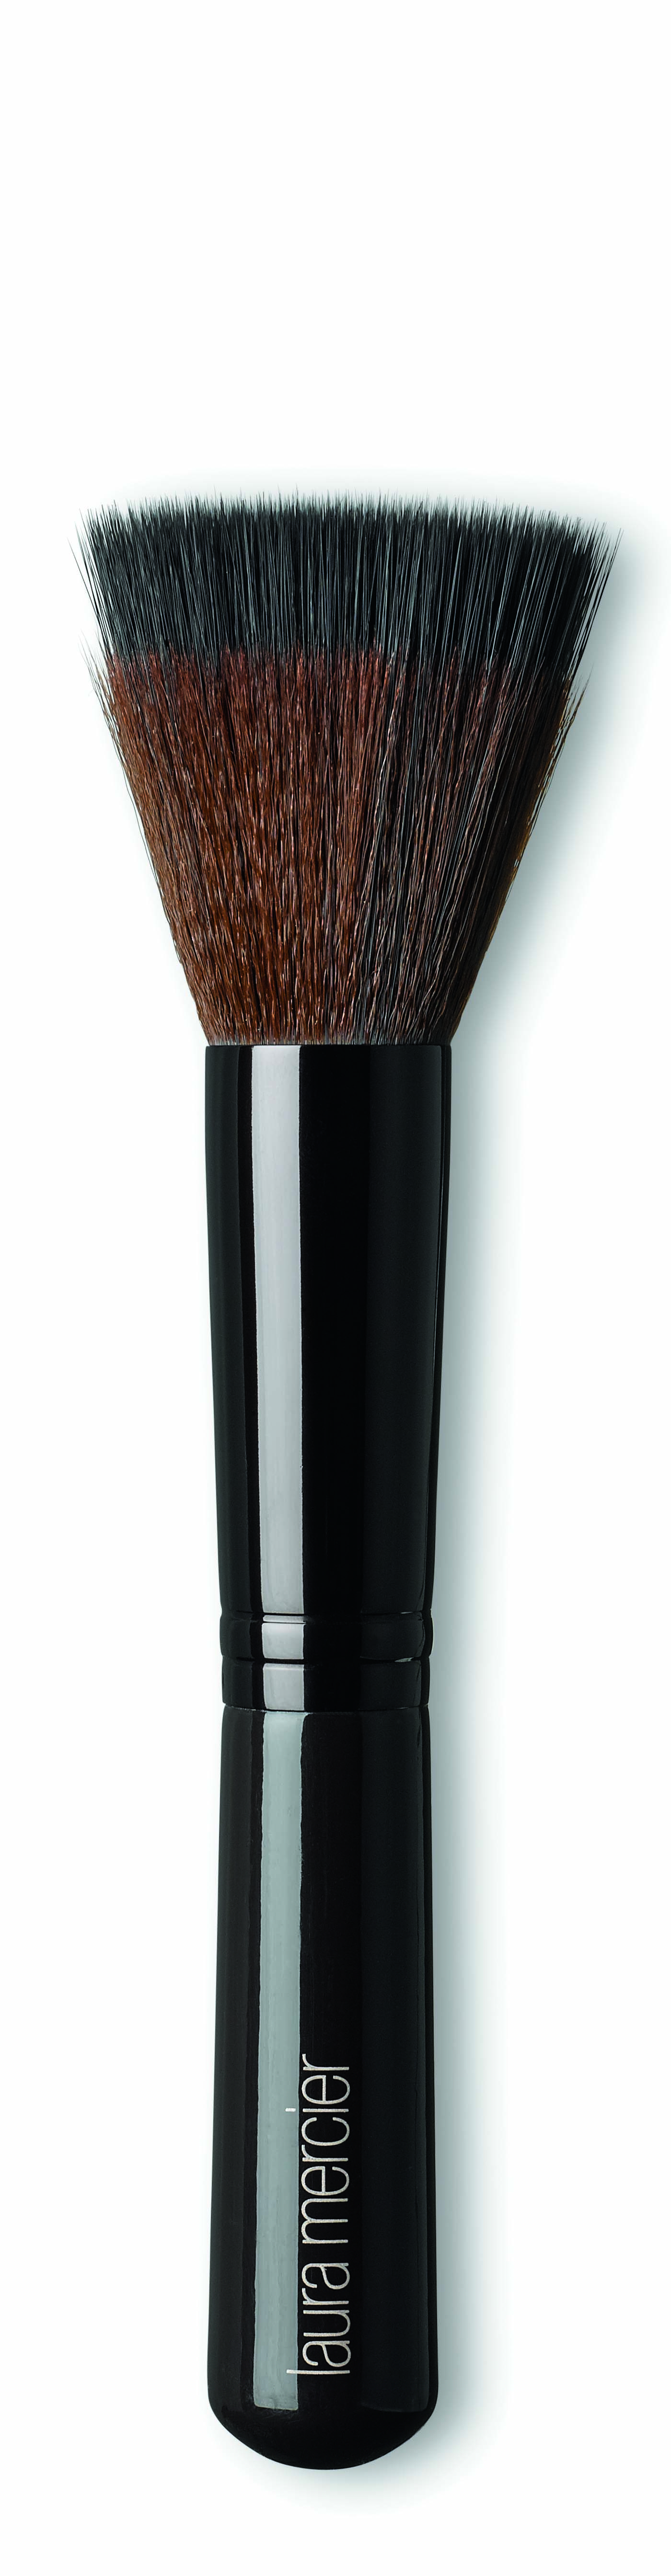 Finishing Face Brush